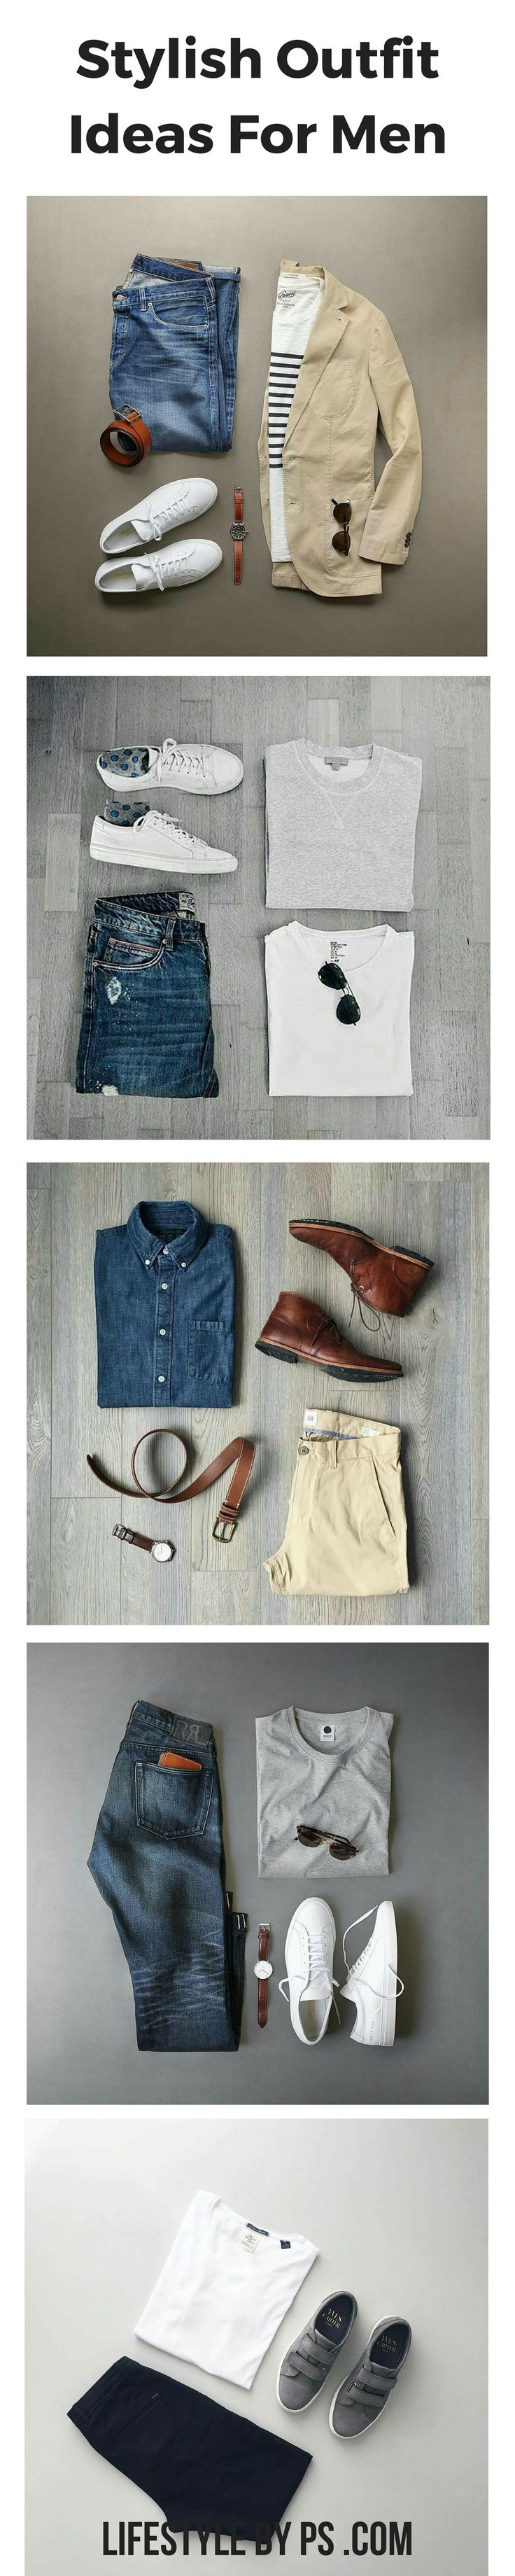 Stylish Outfit Grids for men #mens #fashion #style #outfitgrids